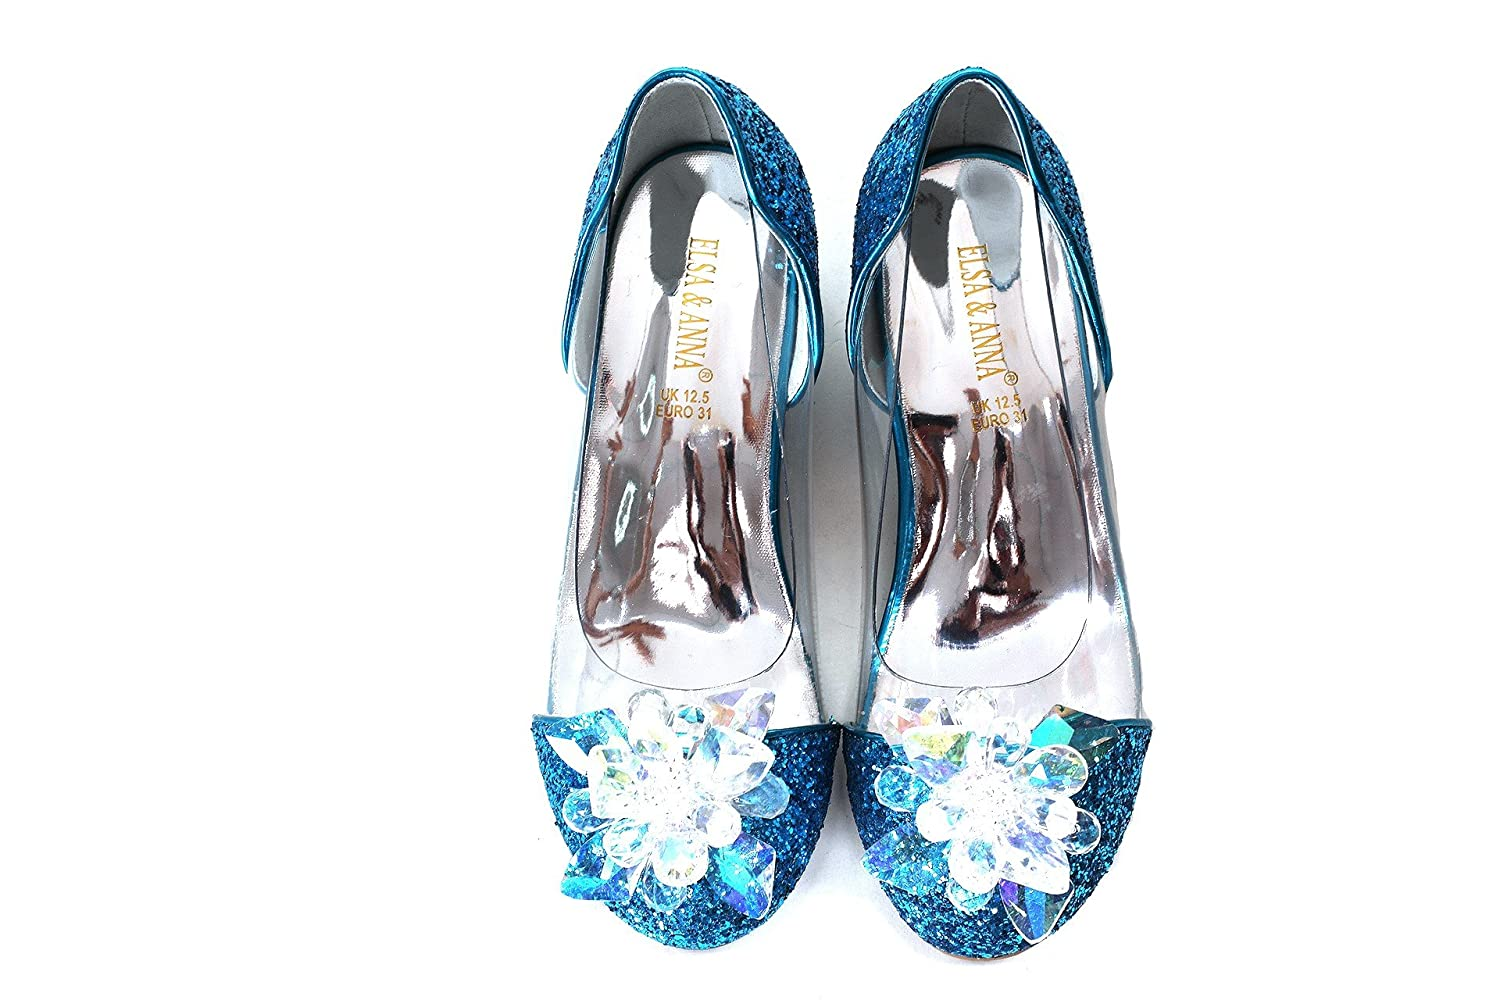 ELSA & ANNA® UK Latest Design Top Quality Girls Princess Snow Queen Wedged Party Shoes Sandals BLU14-SH UK1stChoice-Zone